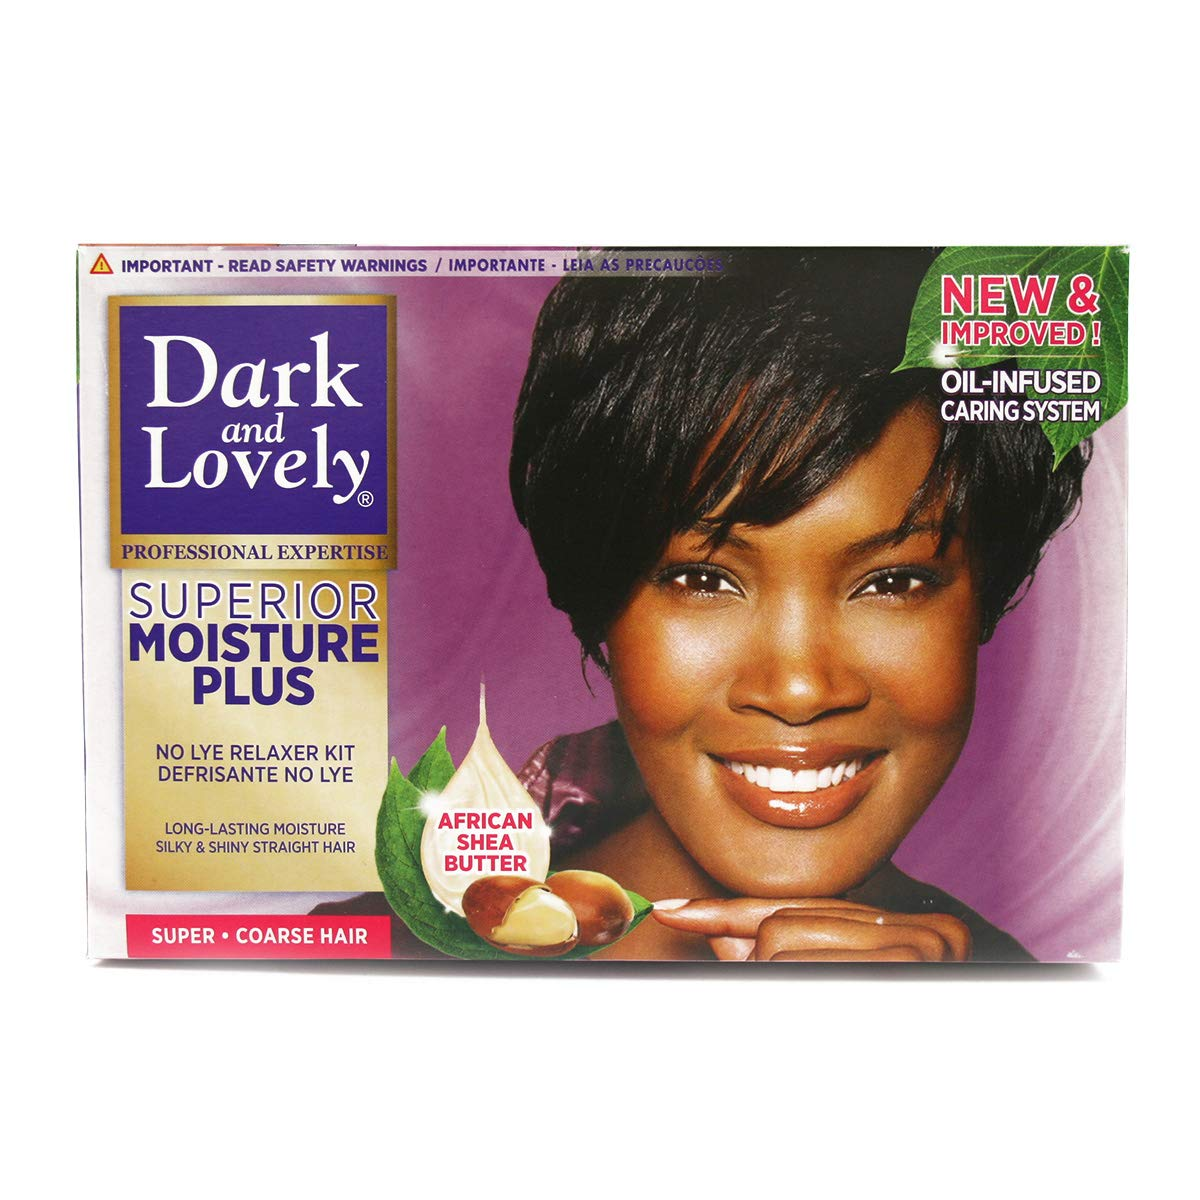 Healthy Gloss 5 Shea Moisture Relaxer Kit - Super Hair Color Women by Dark And Lovely